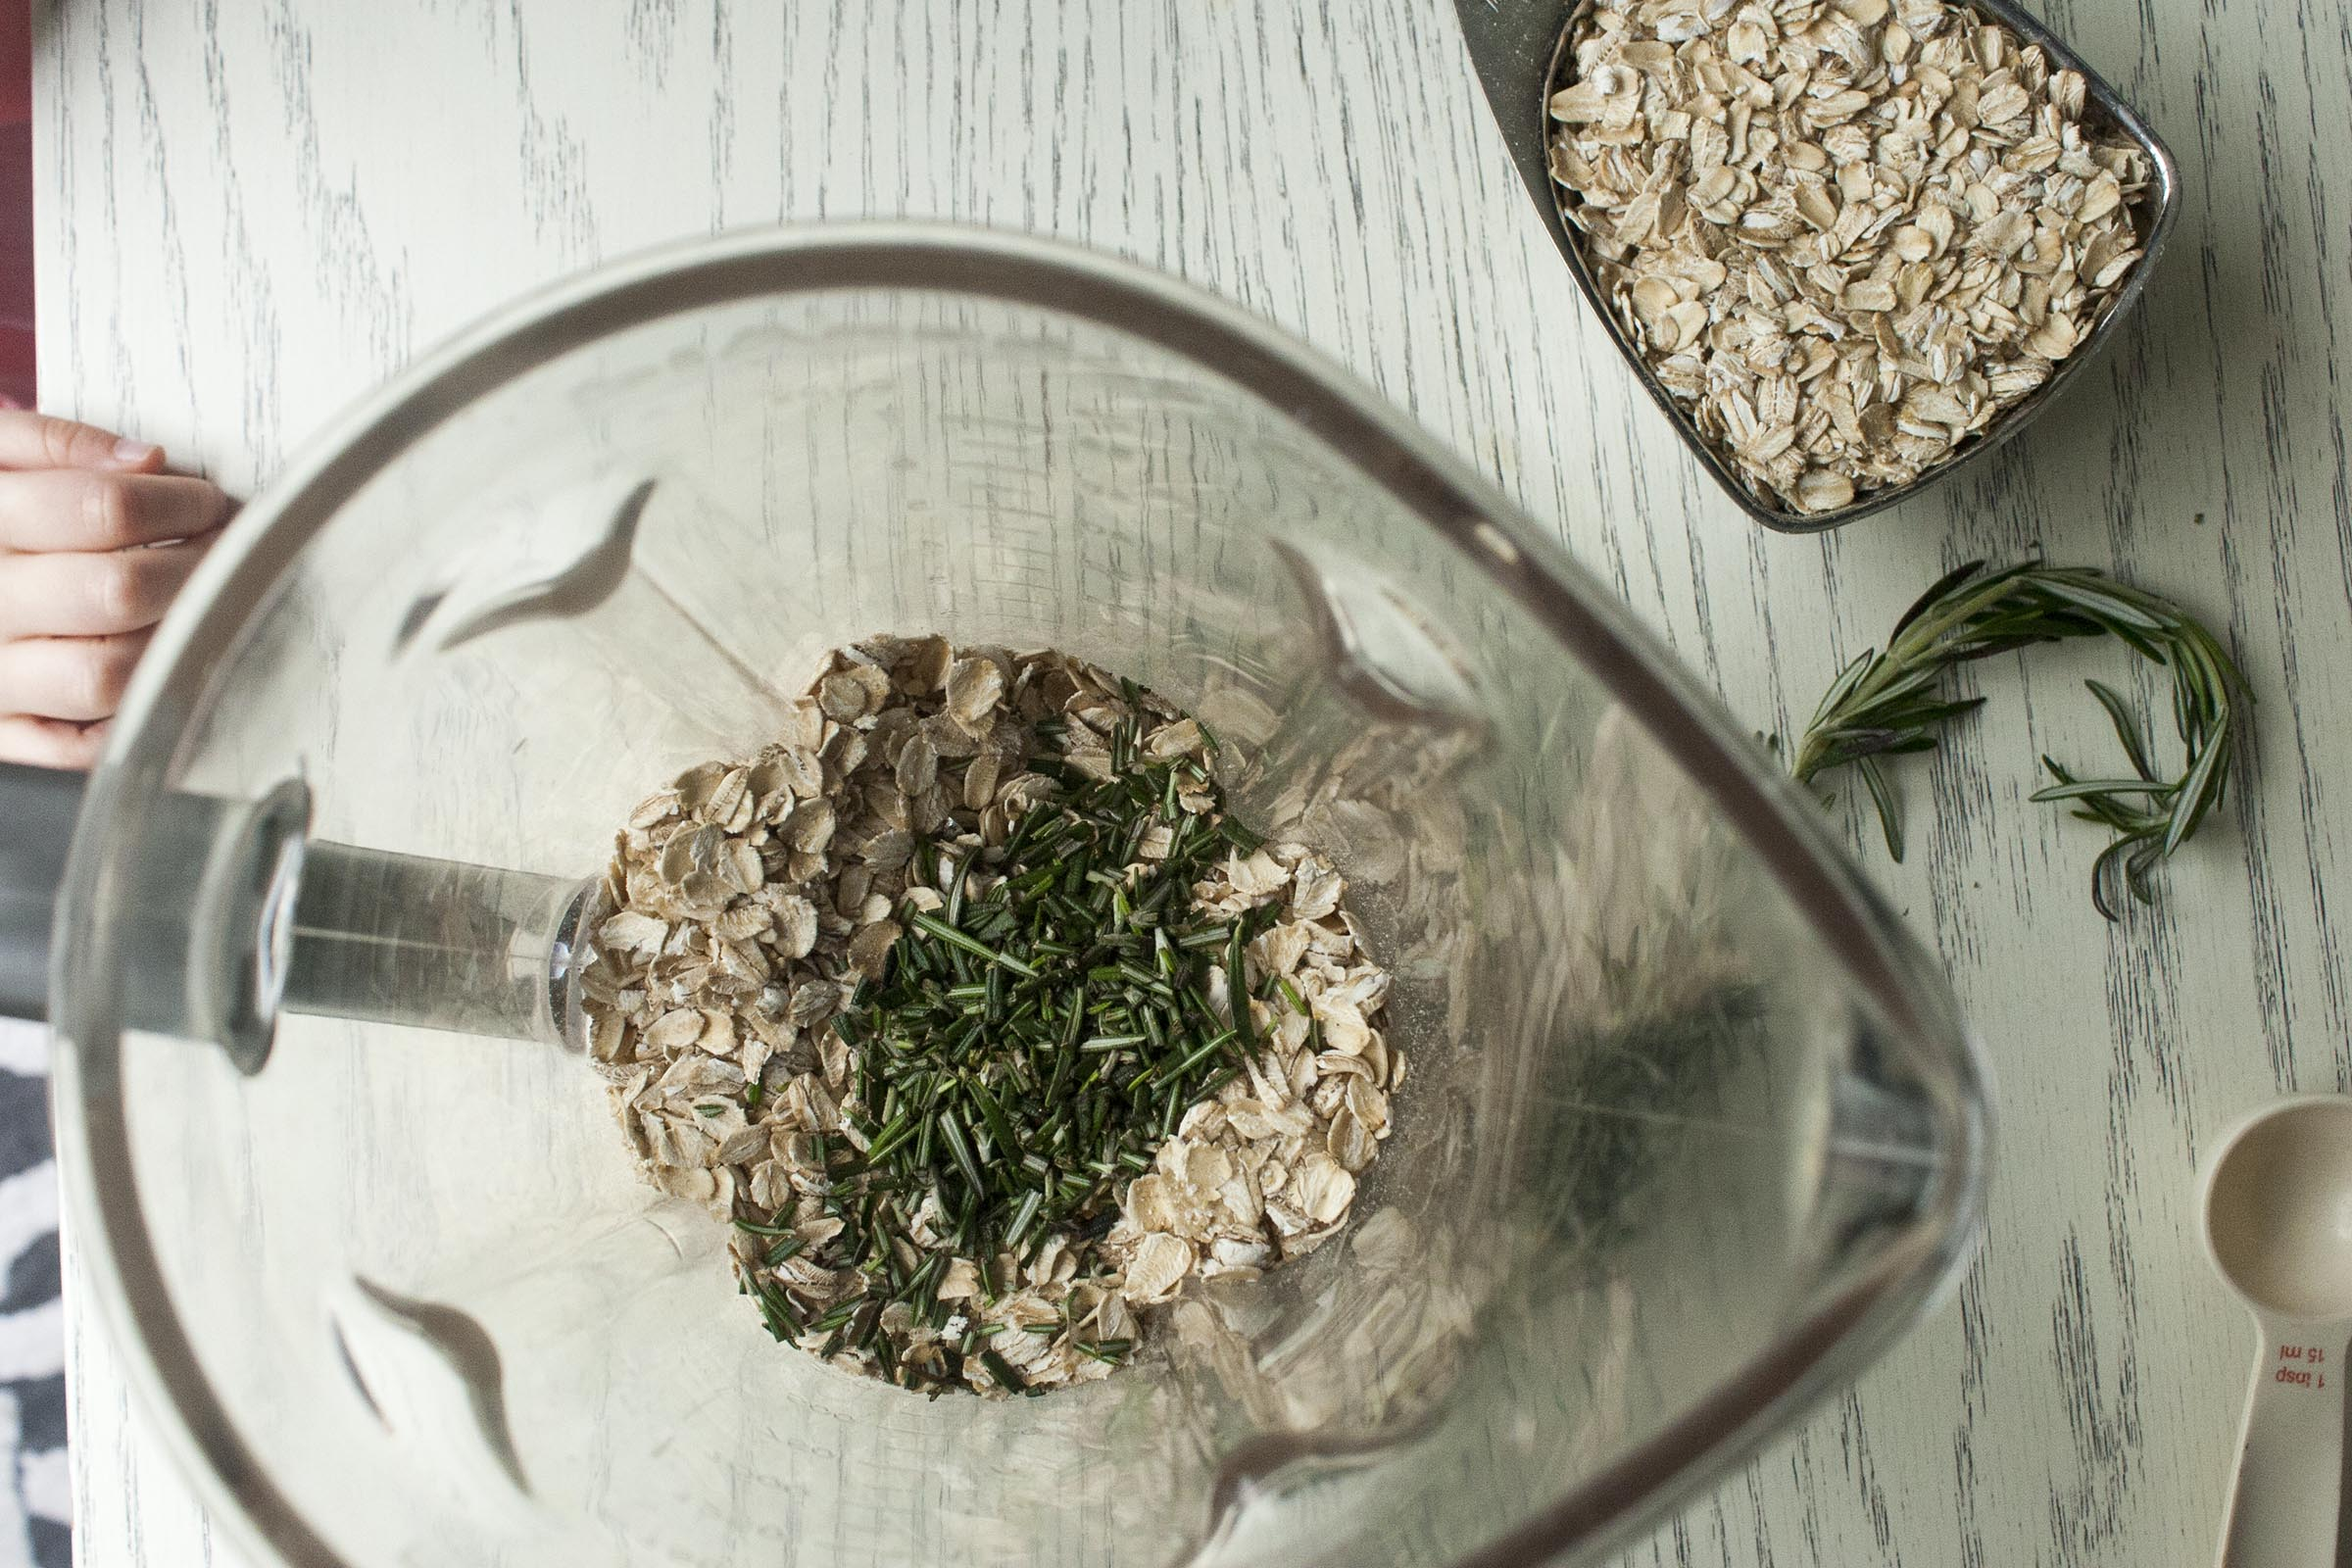 About to blend Oats and Rosemary for Salted Rosemary Oat Bark. www.lifeaswecookit.com